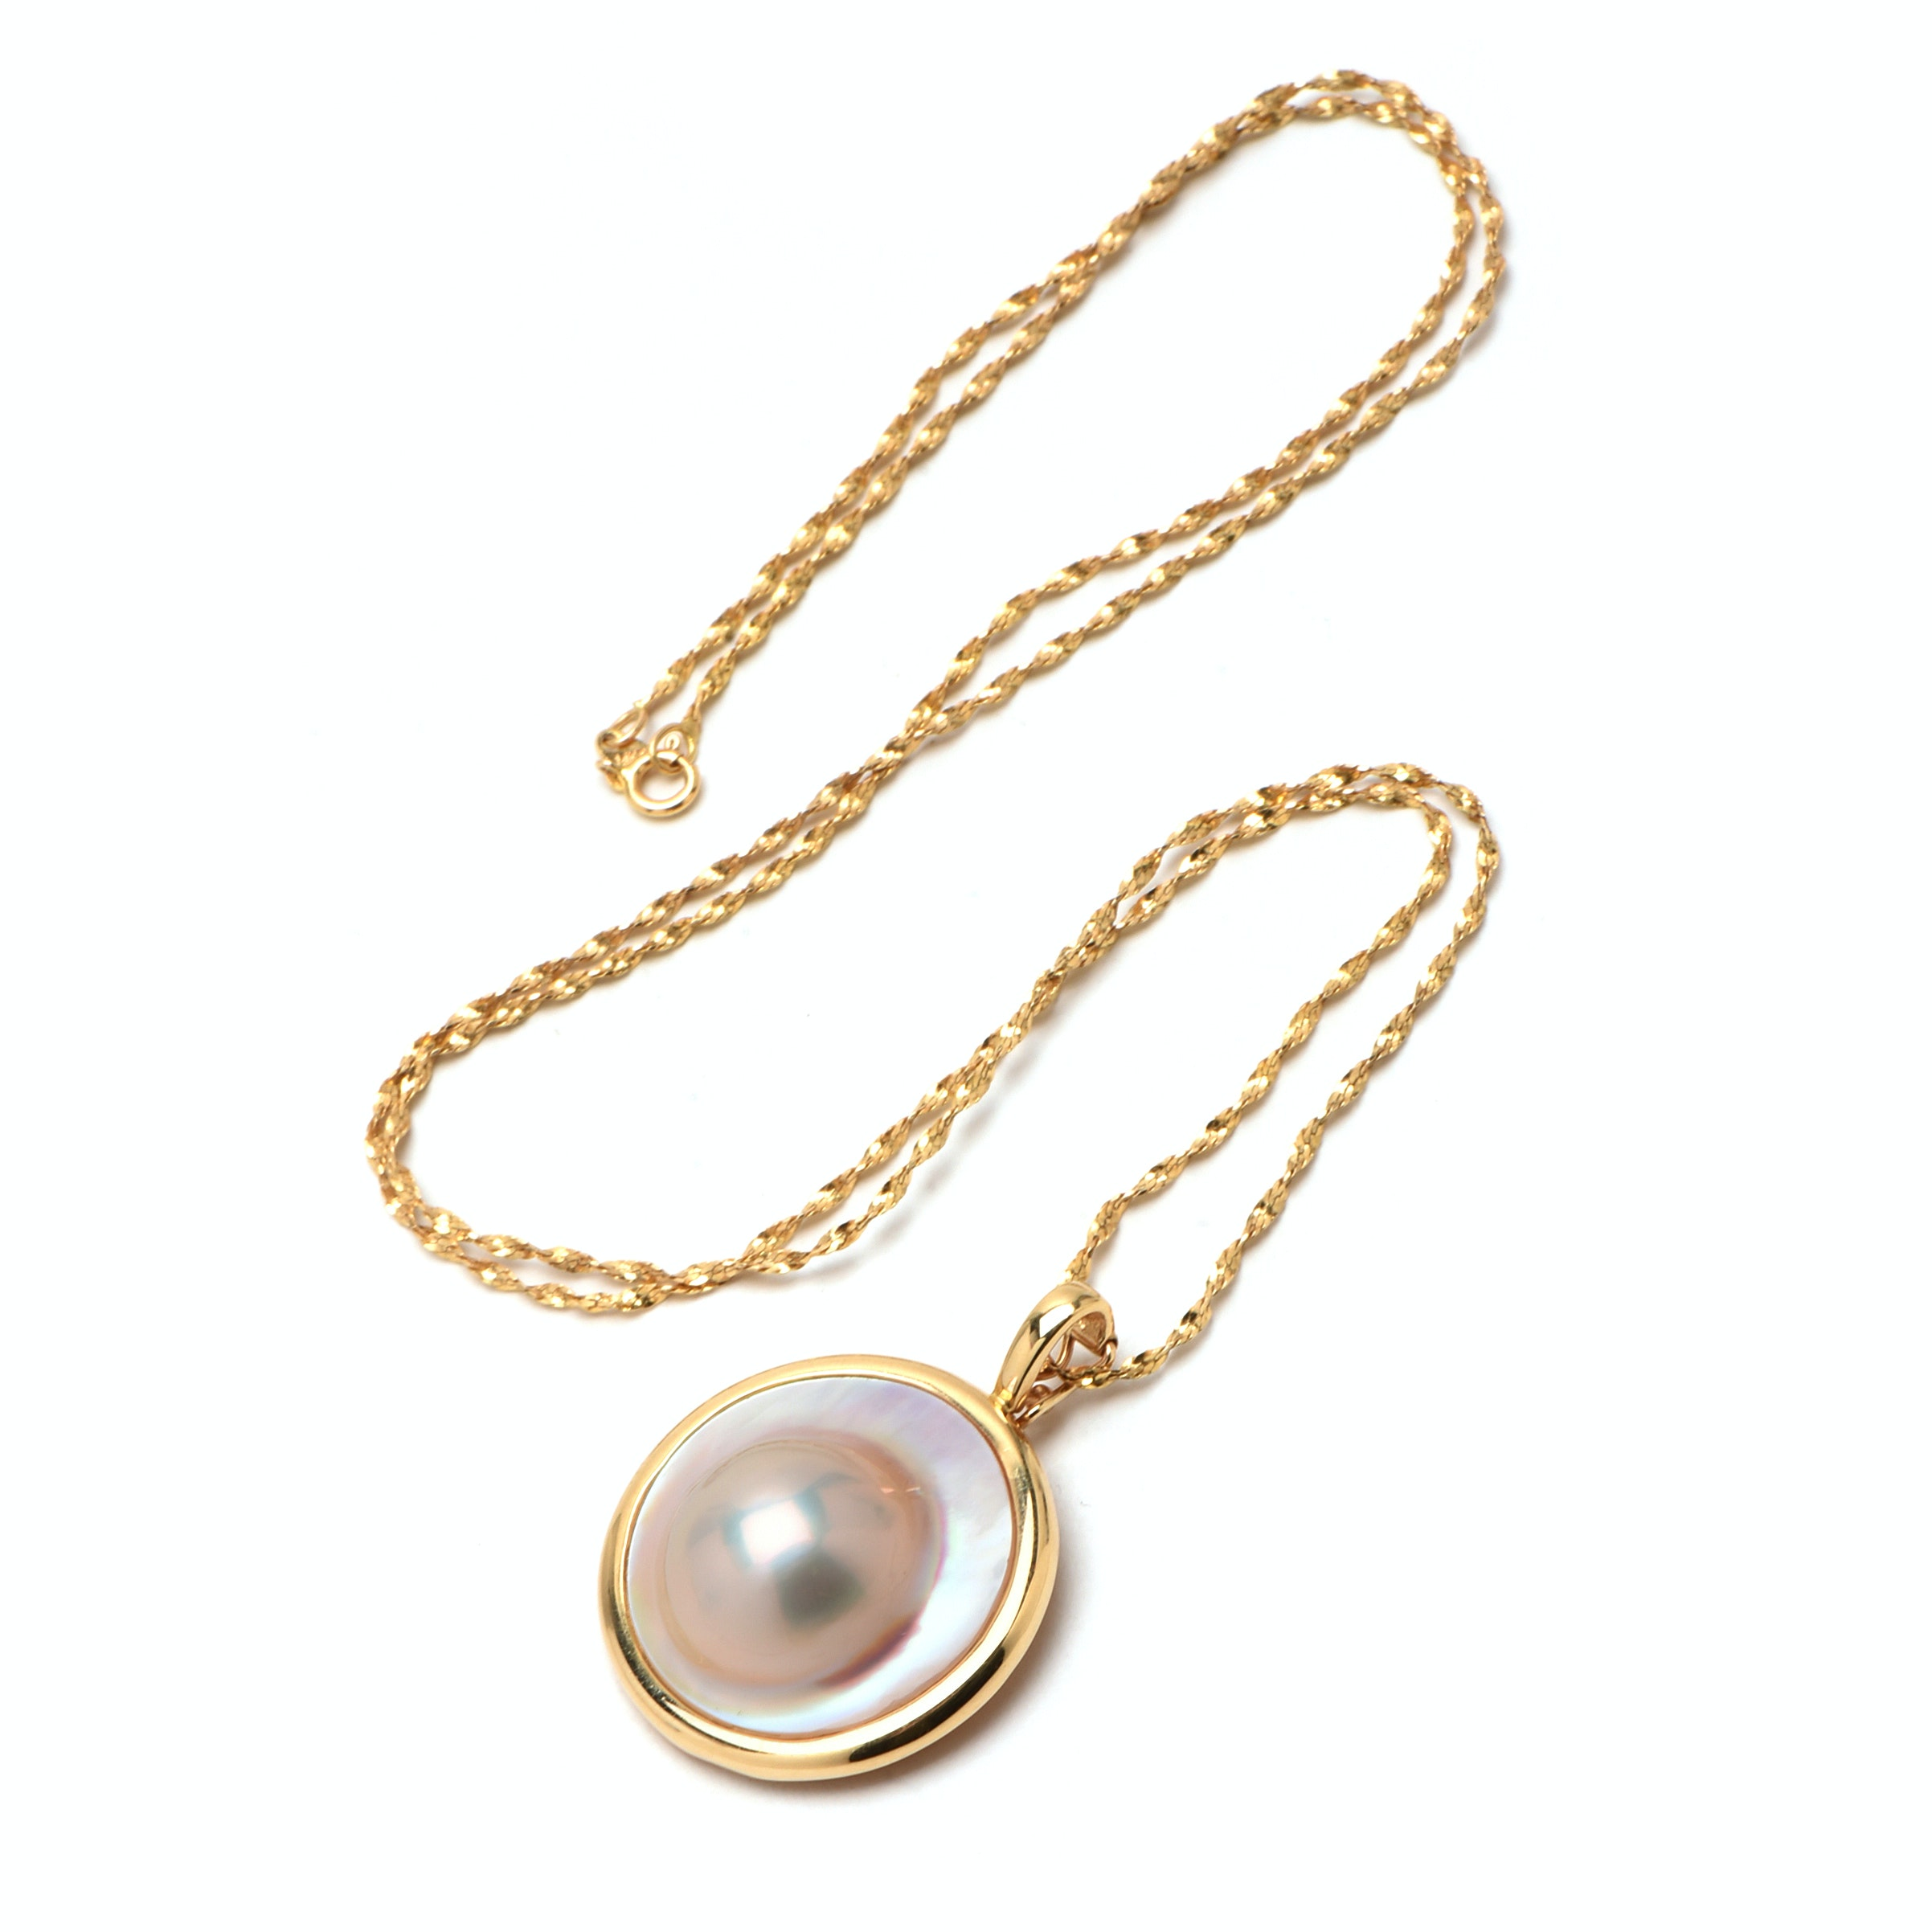 14K Yellow Gold Mabé Cultured Pearl Pendant Necklace